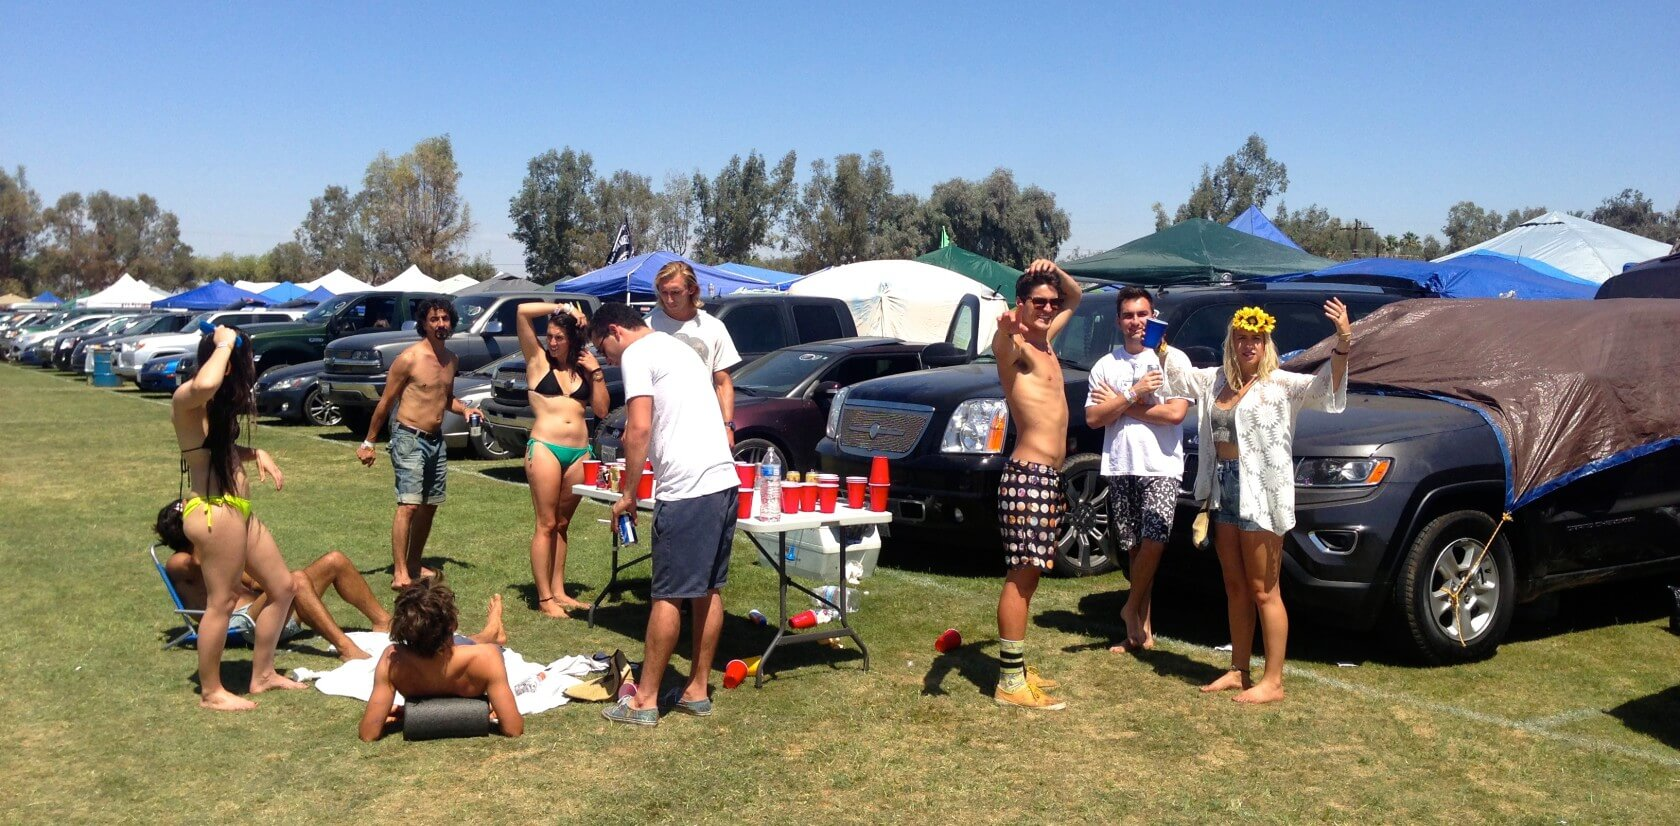 camping at coachella tips tricks and guide coachella review